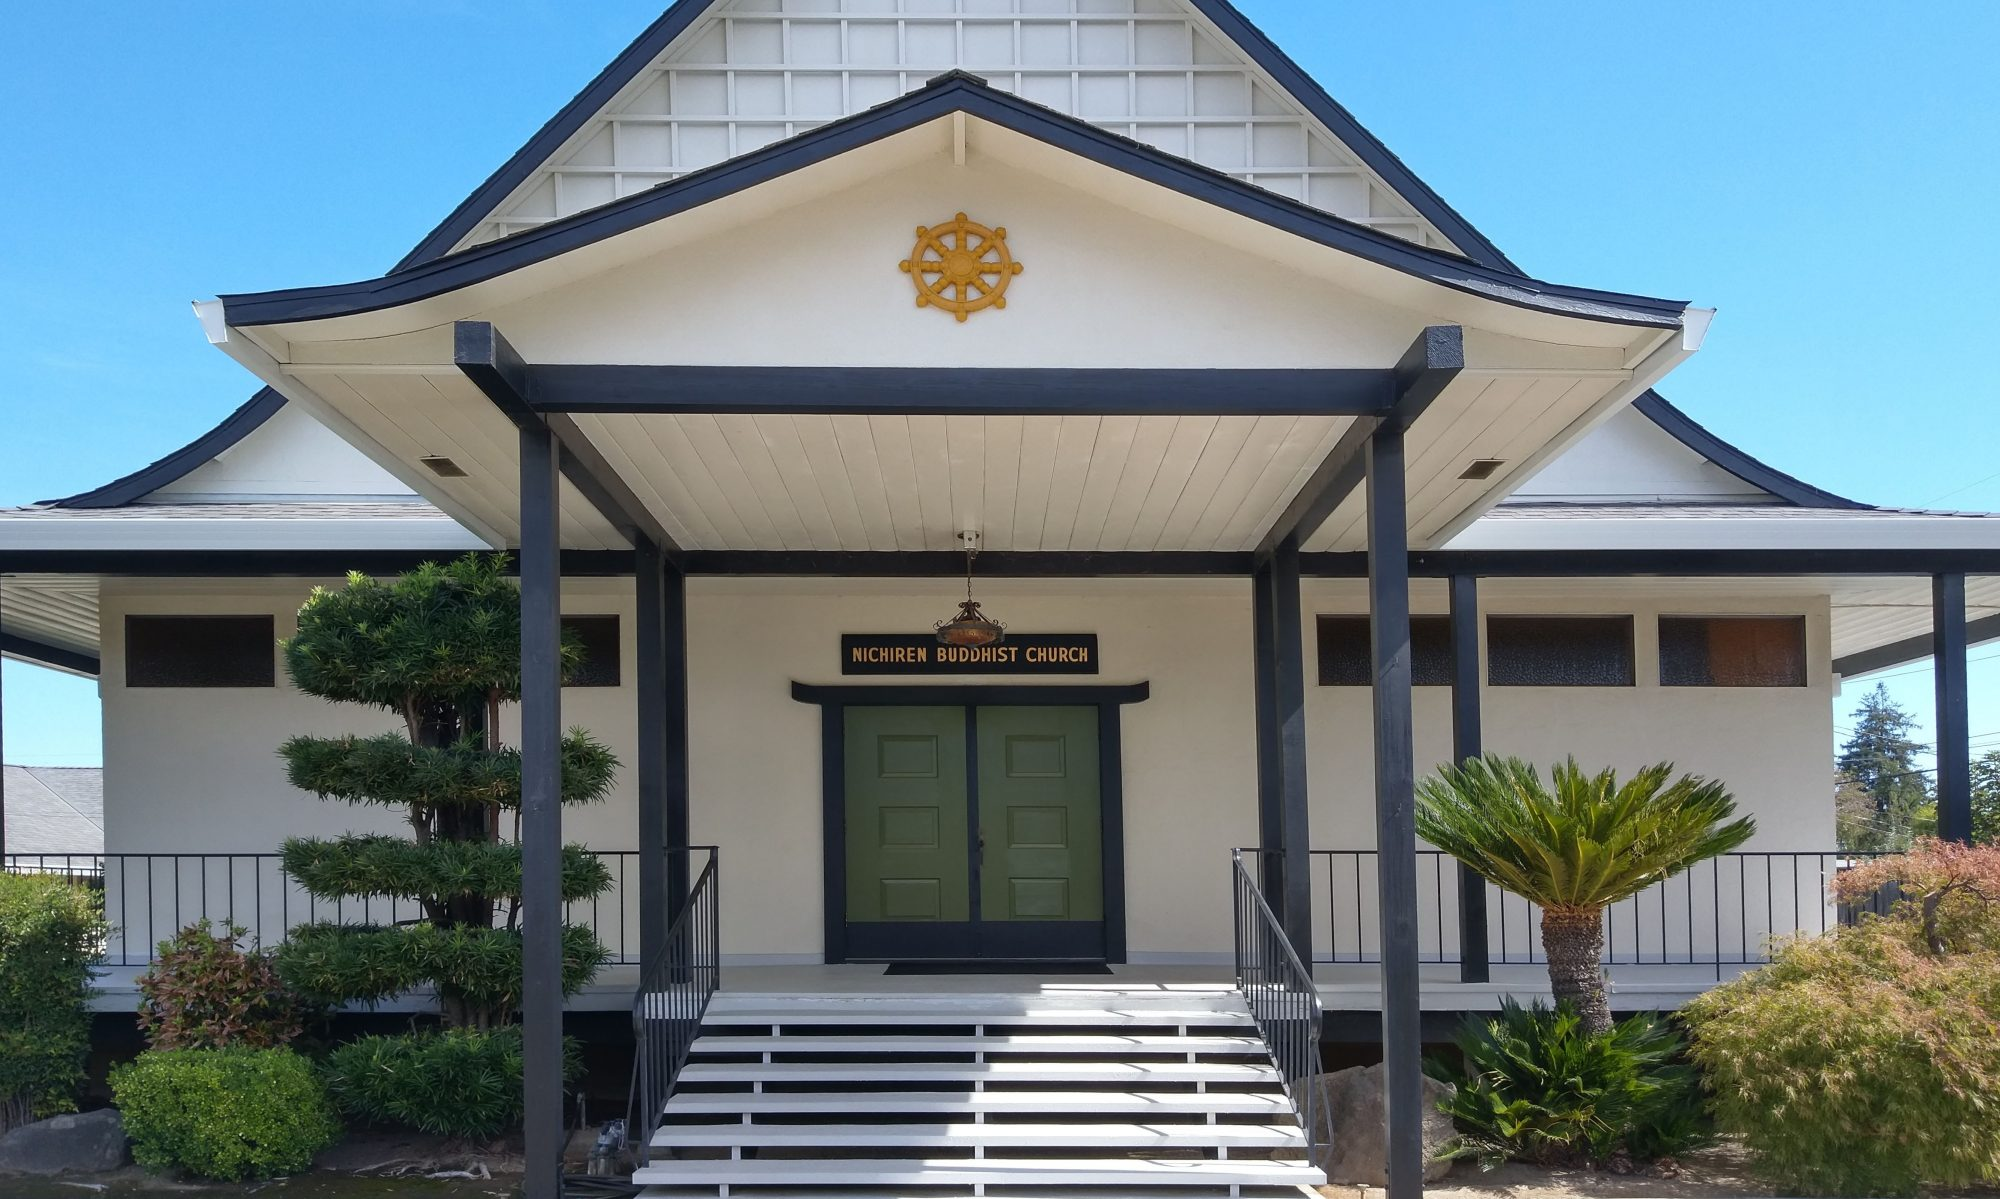 Nichiren Buddhist Church